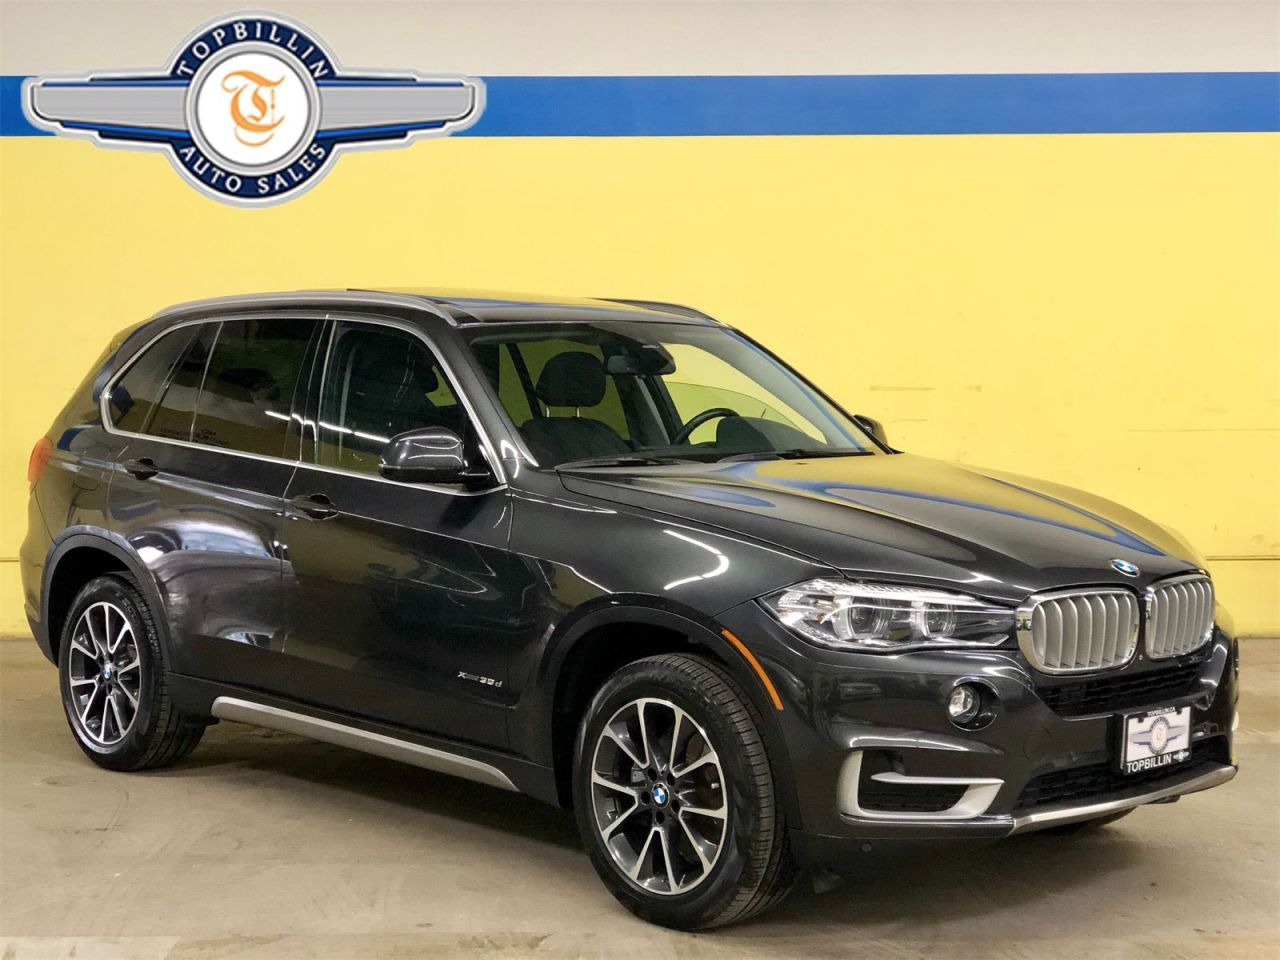 2015 BMW X5 xDrive35d, Fully Loaded, Only 45K kms